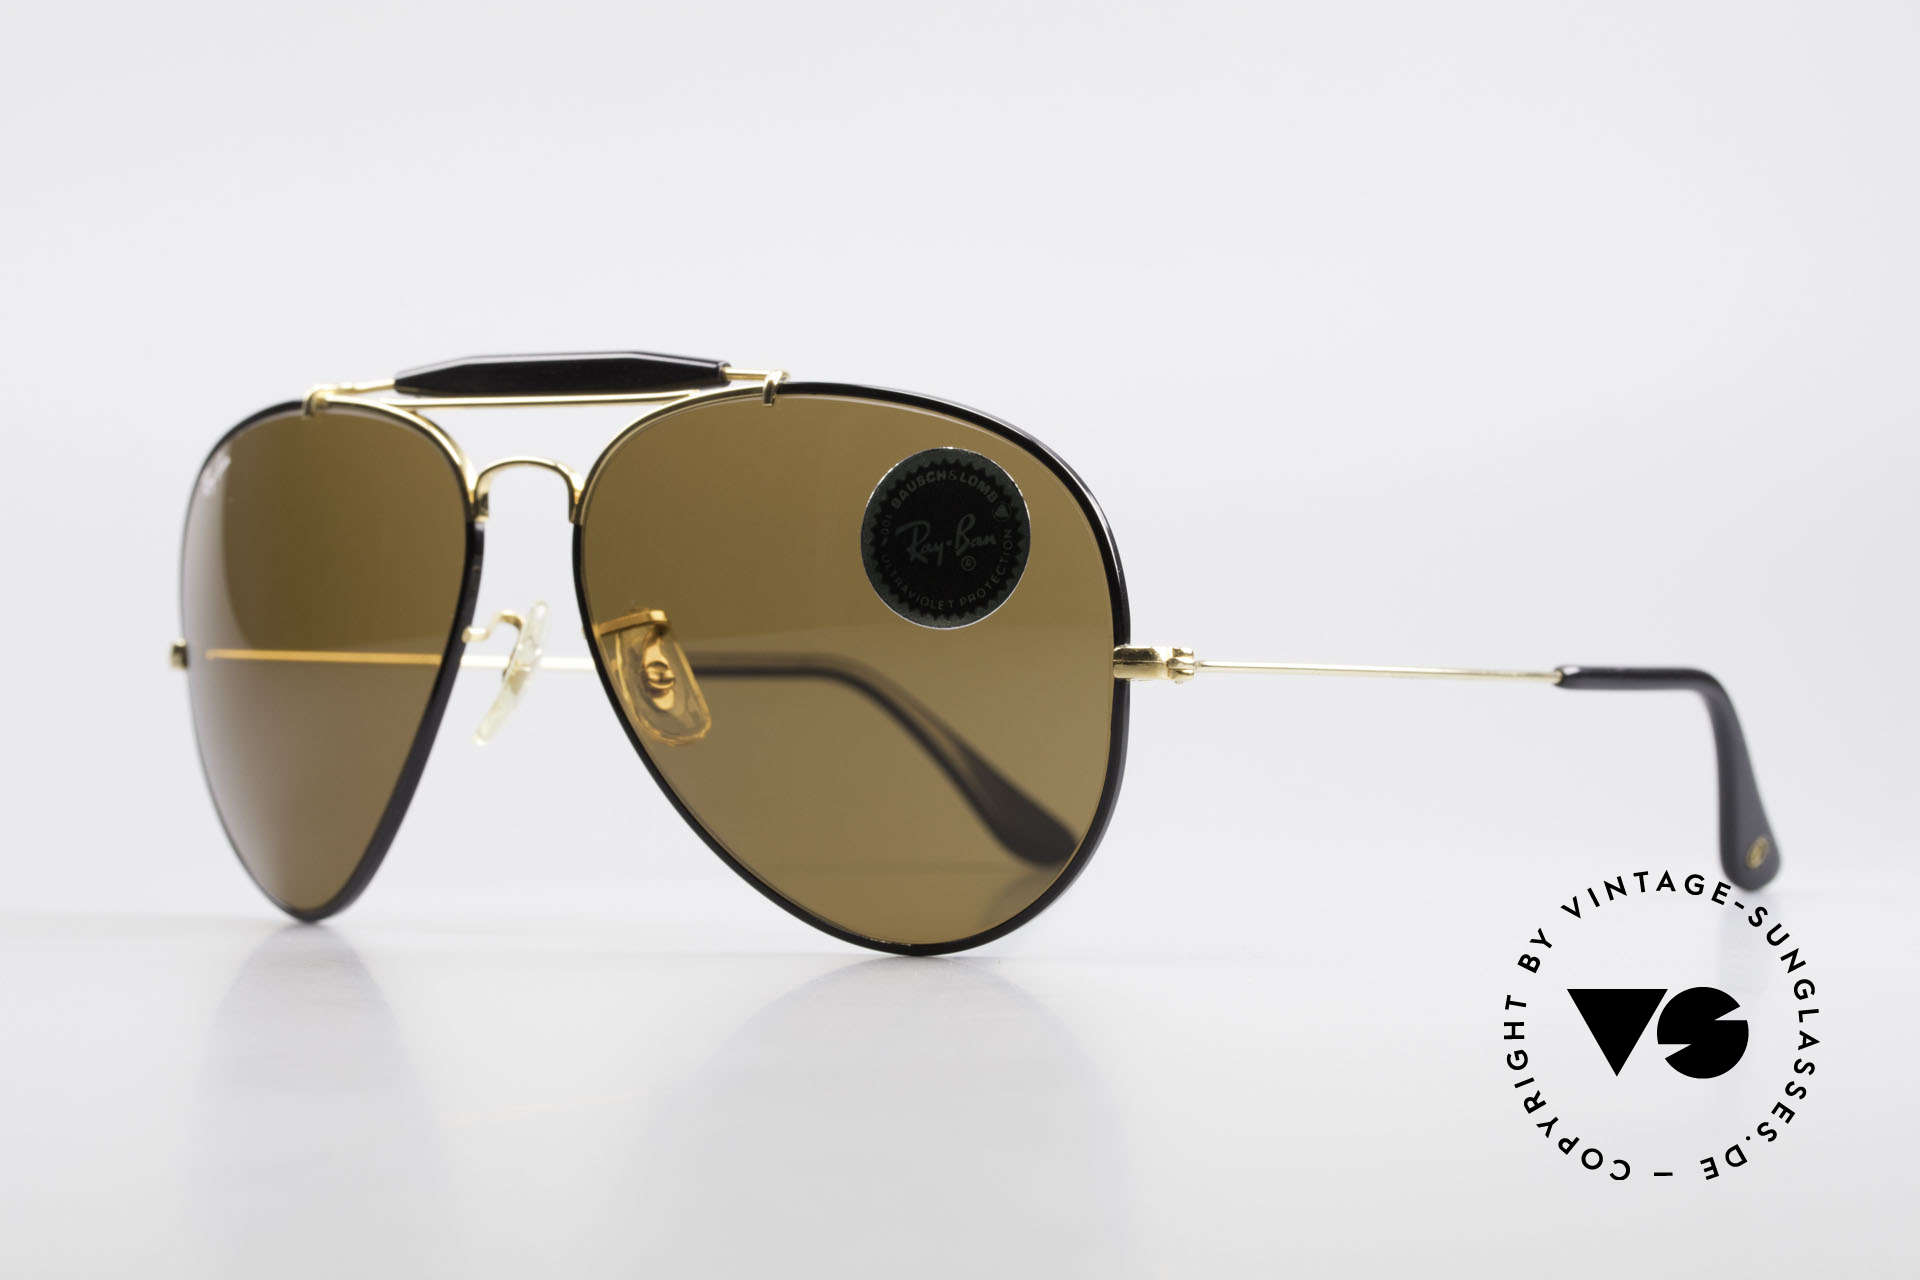 Ray Ban Outdoorsman II Precious Metals USA Ray-Ban, with 24 carat GOLD-PLATED frame components, Made for Men